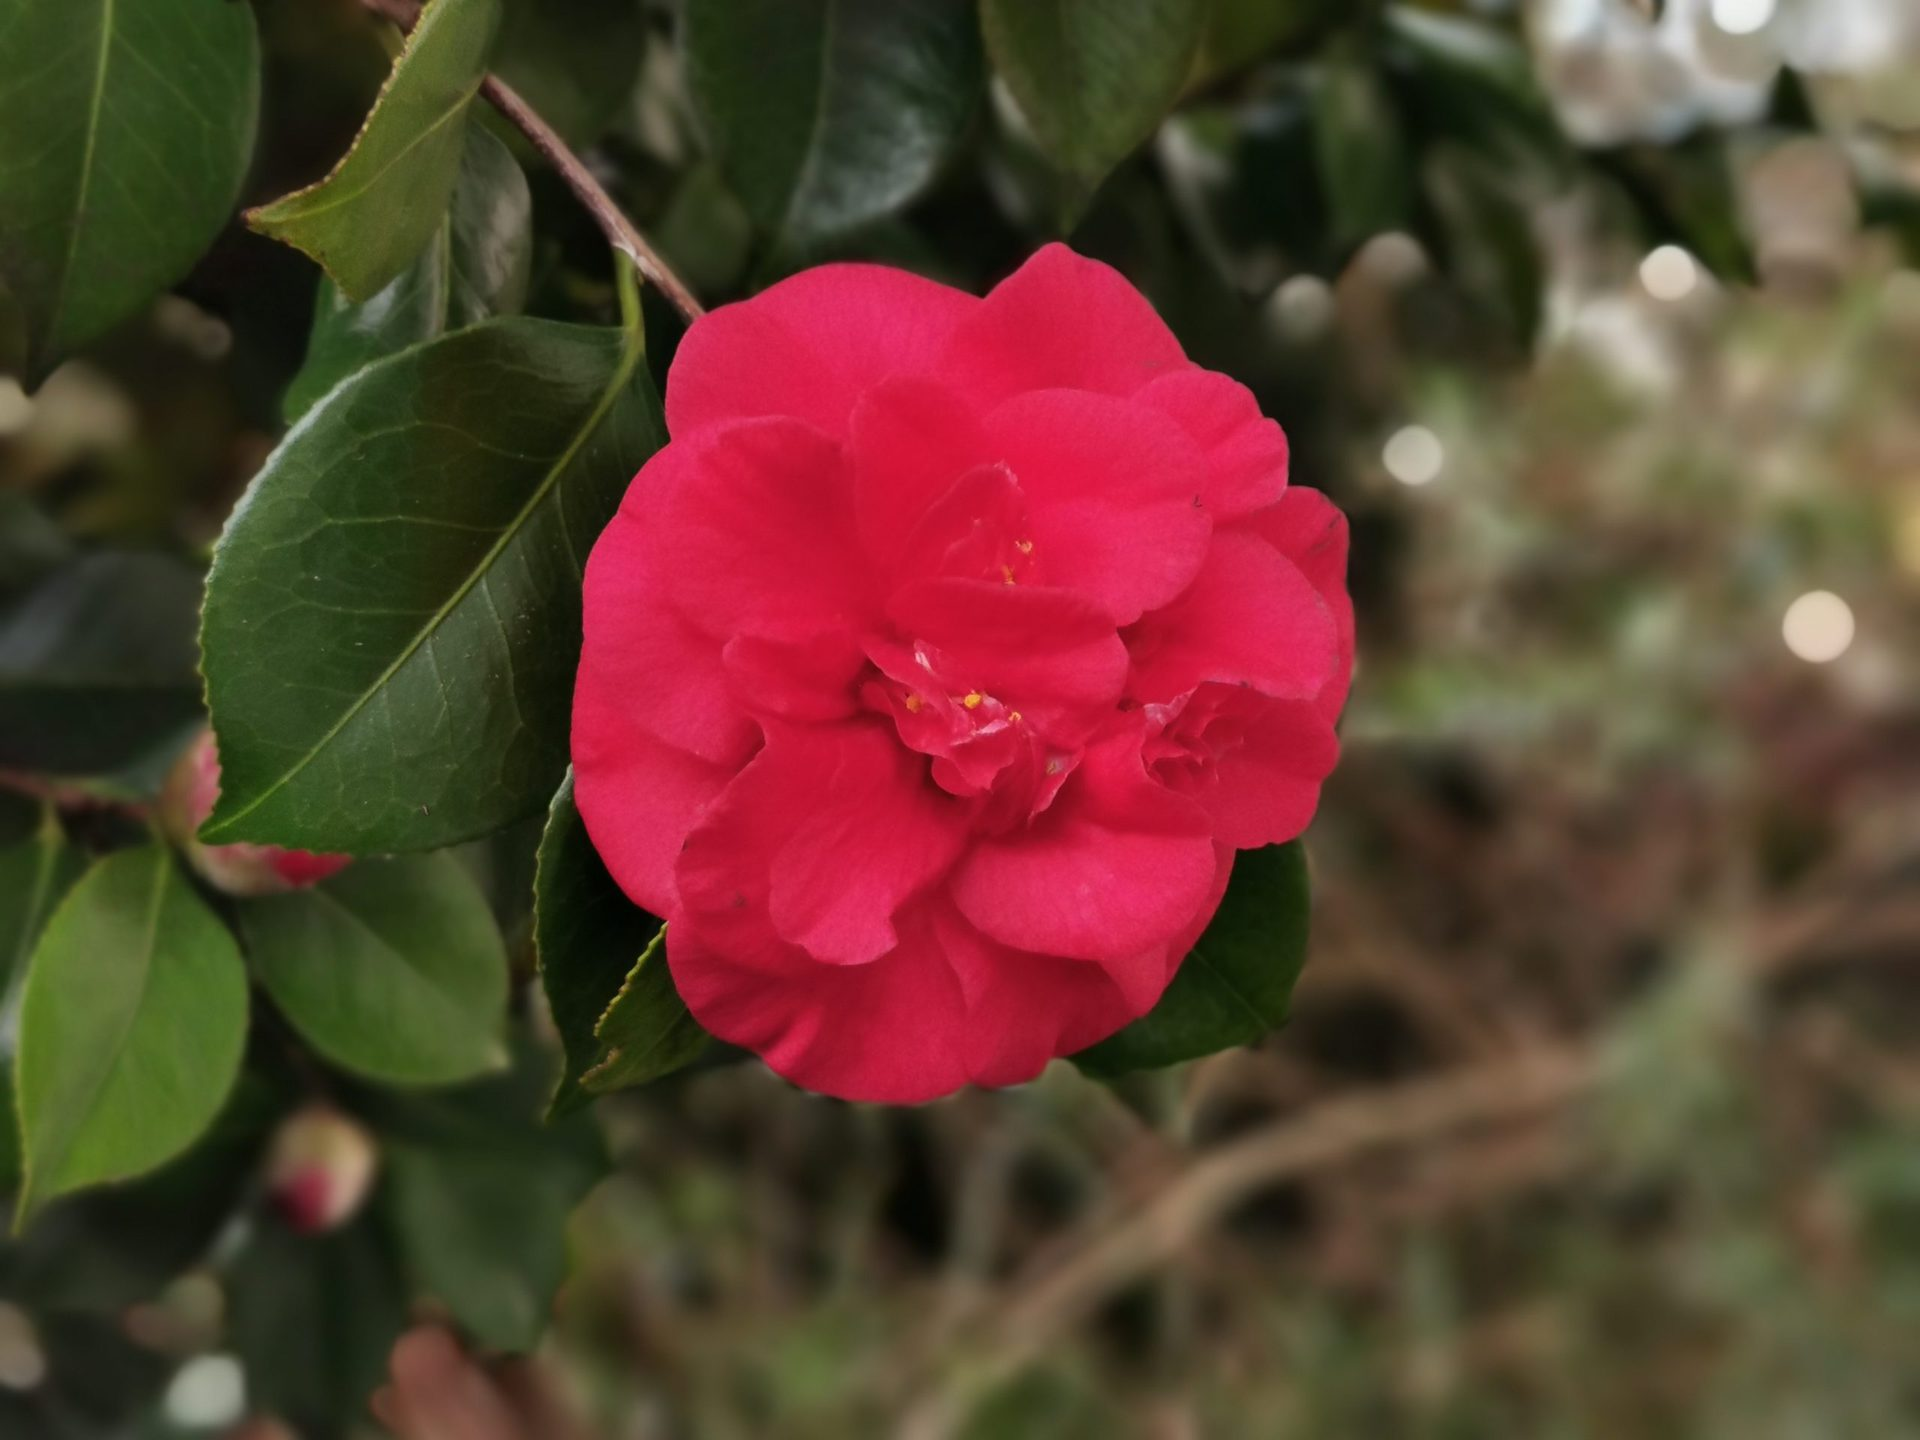 Huawei P30 Pro aperture photo sample of a red flower